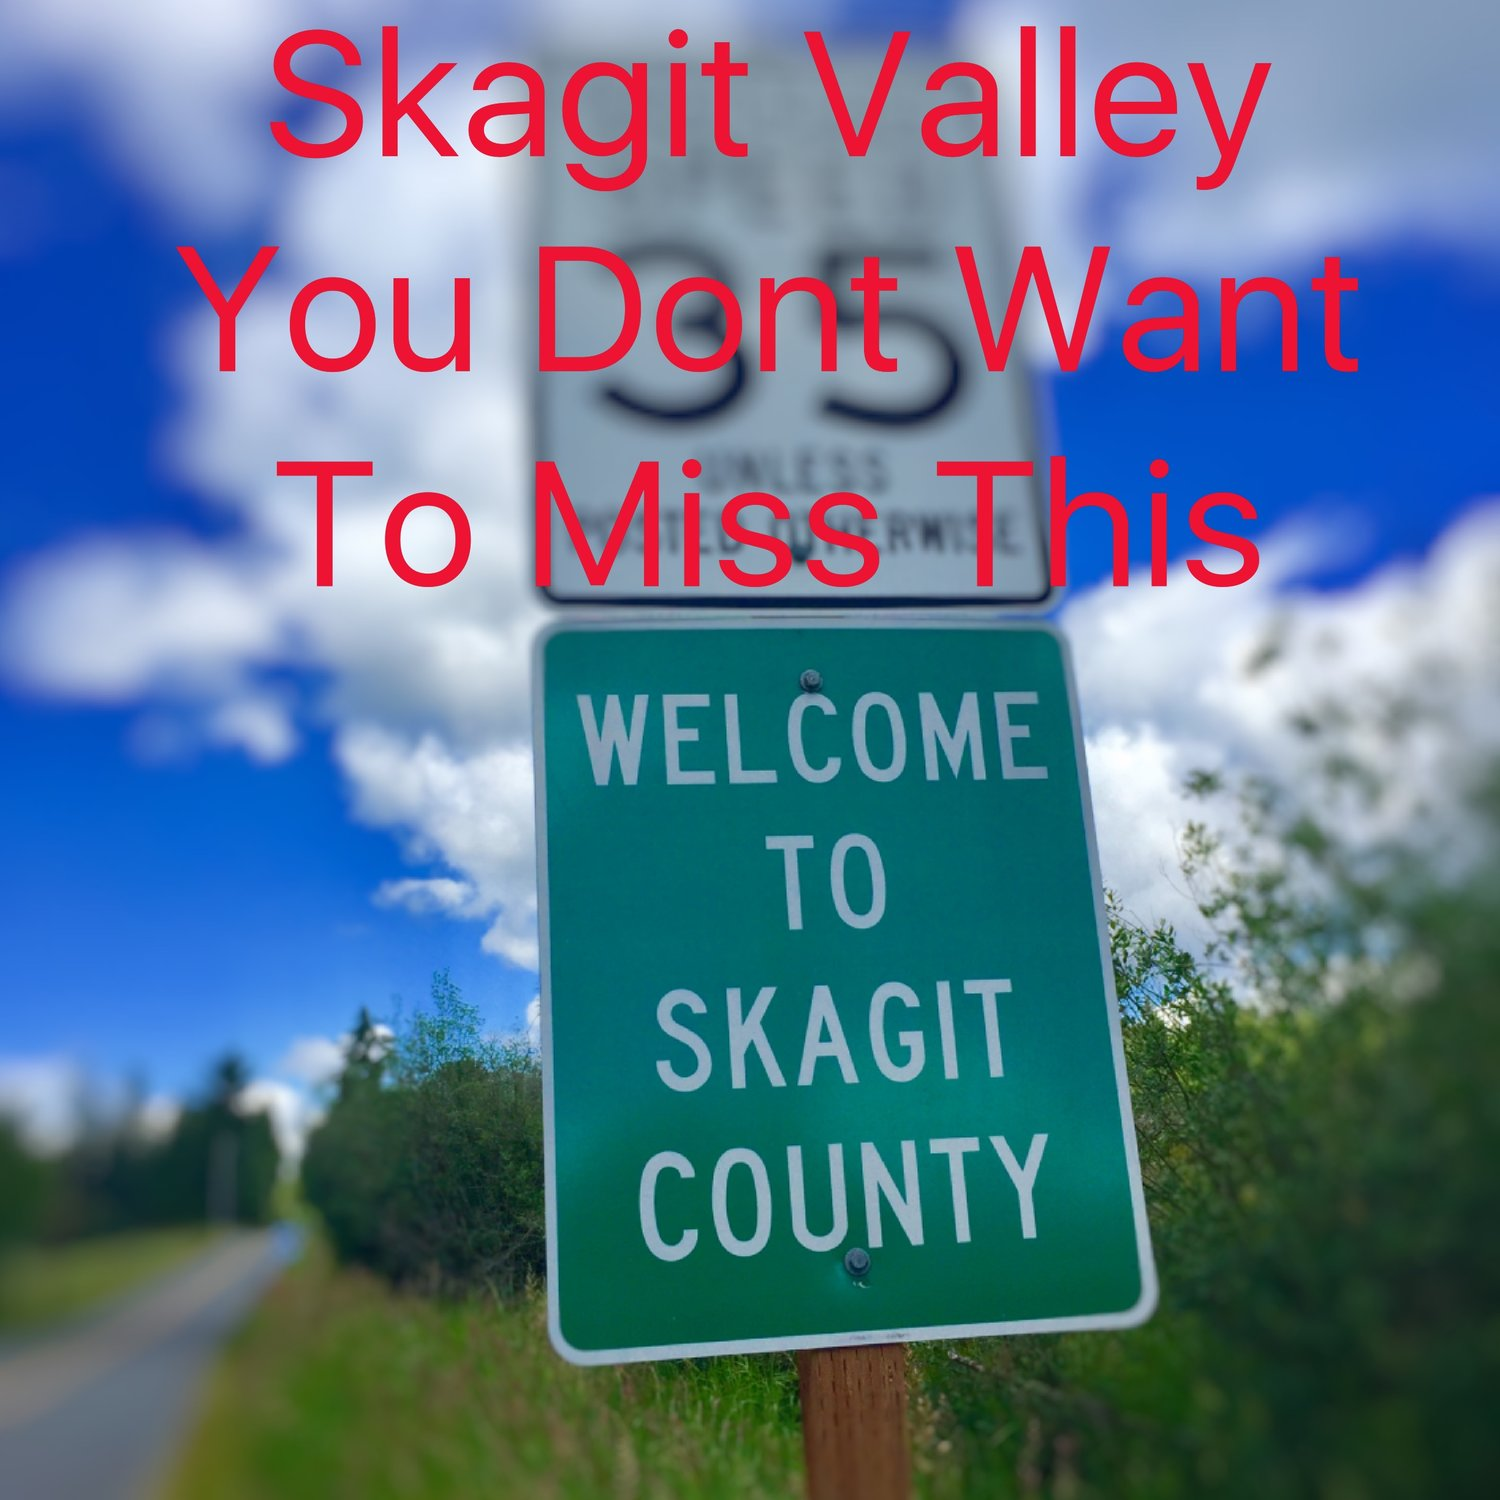 Skagit Valley You Don't Want to Miss This